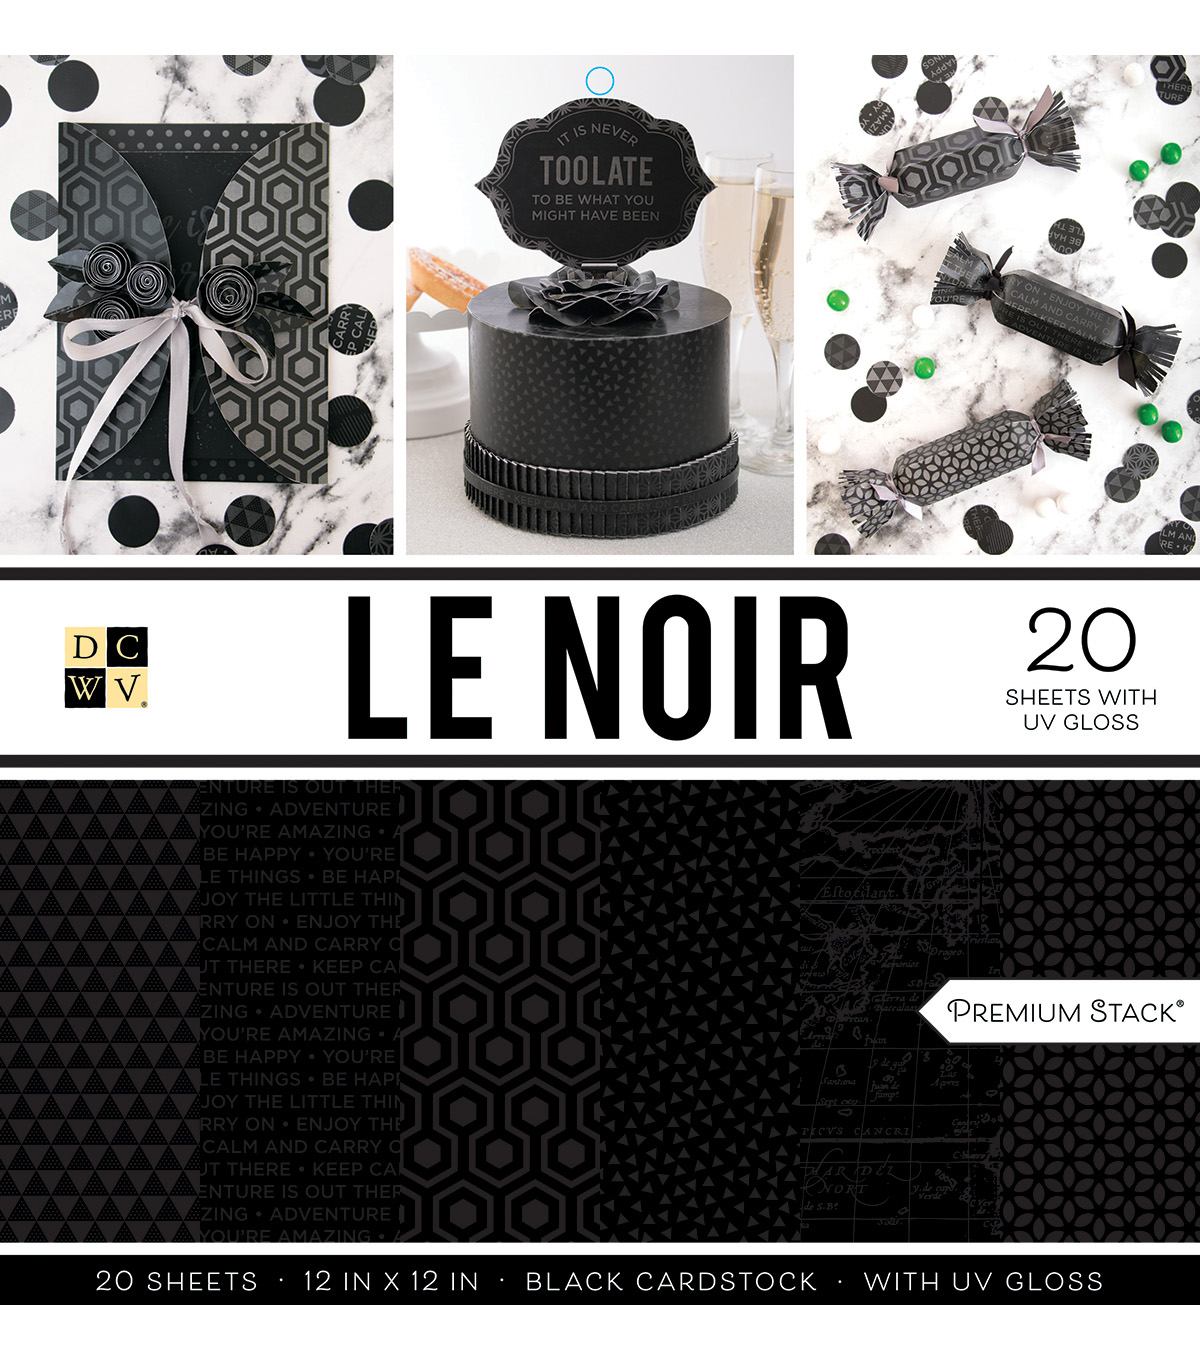 Dcwv 20 Pack 12''x12''  Premium Stack Printed Cardstock Le Noir              Dcwv 20 Pack 12''x12''  Premium Stack Printed Cardstock Le Noir by Dcwv